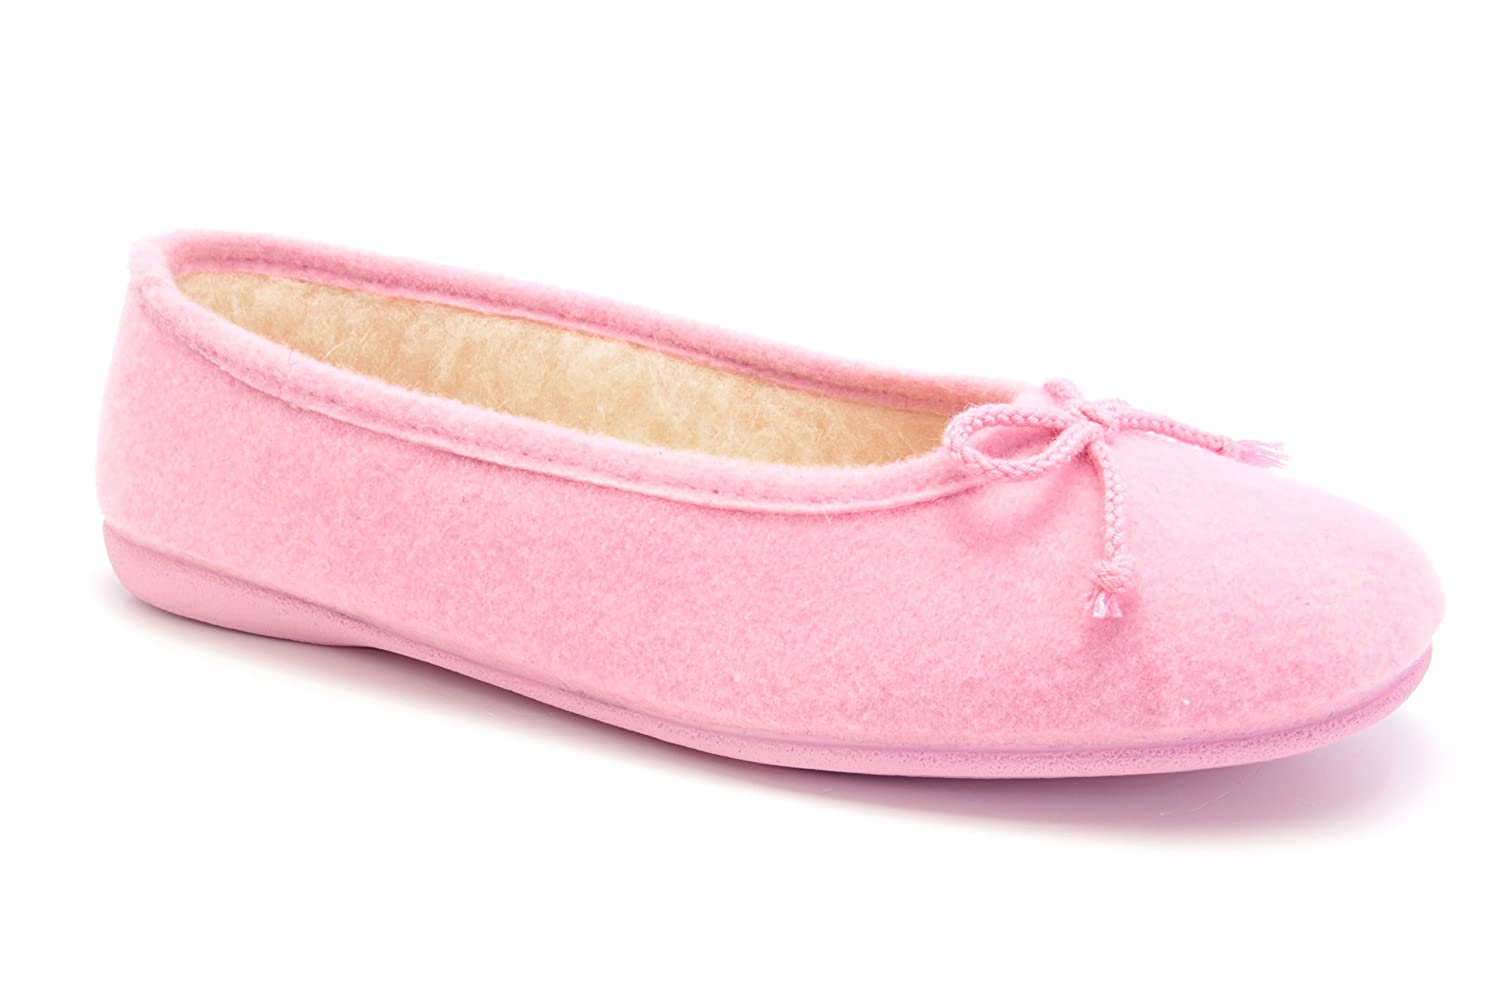 Andres Machado.AM402ALPINO.Womens Felt Ballet Flats in Anthracite.MADE IN SPAIN.Medium and Big sizes